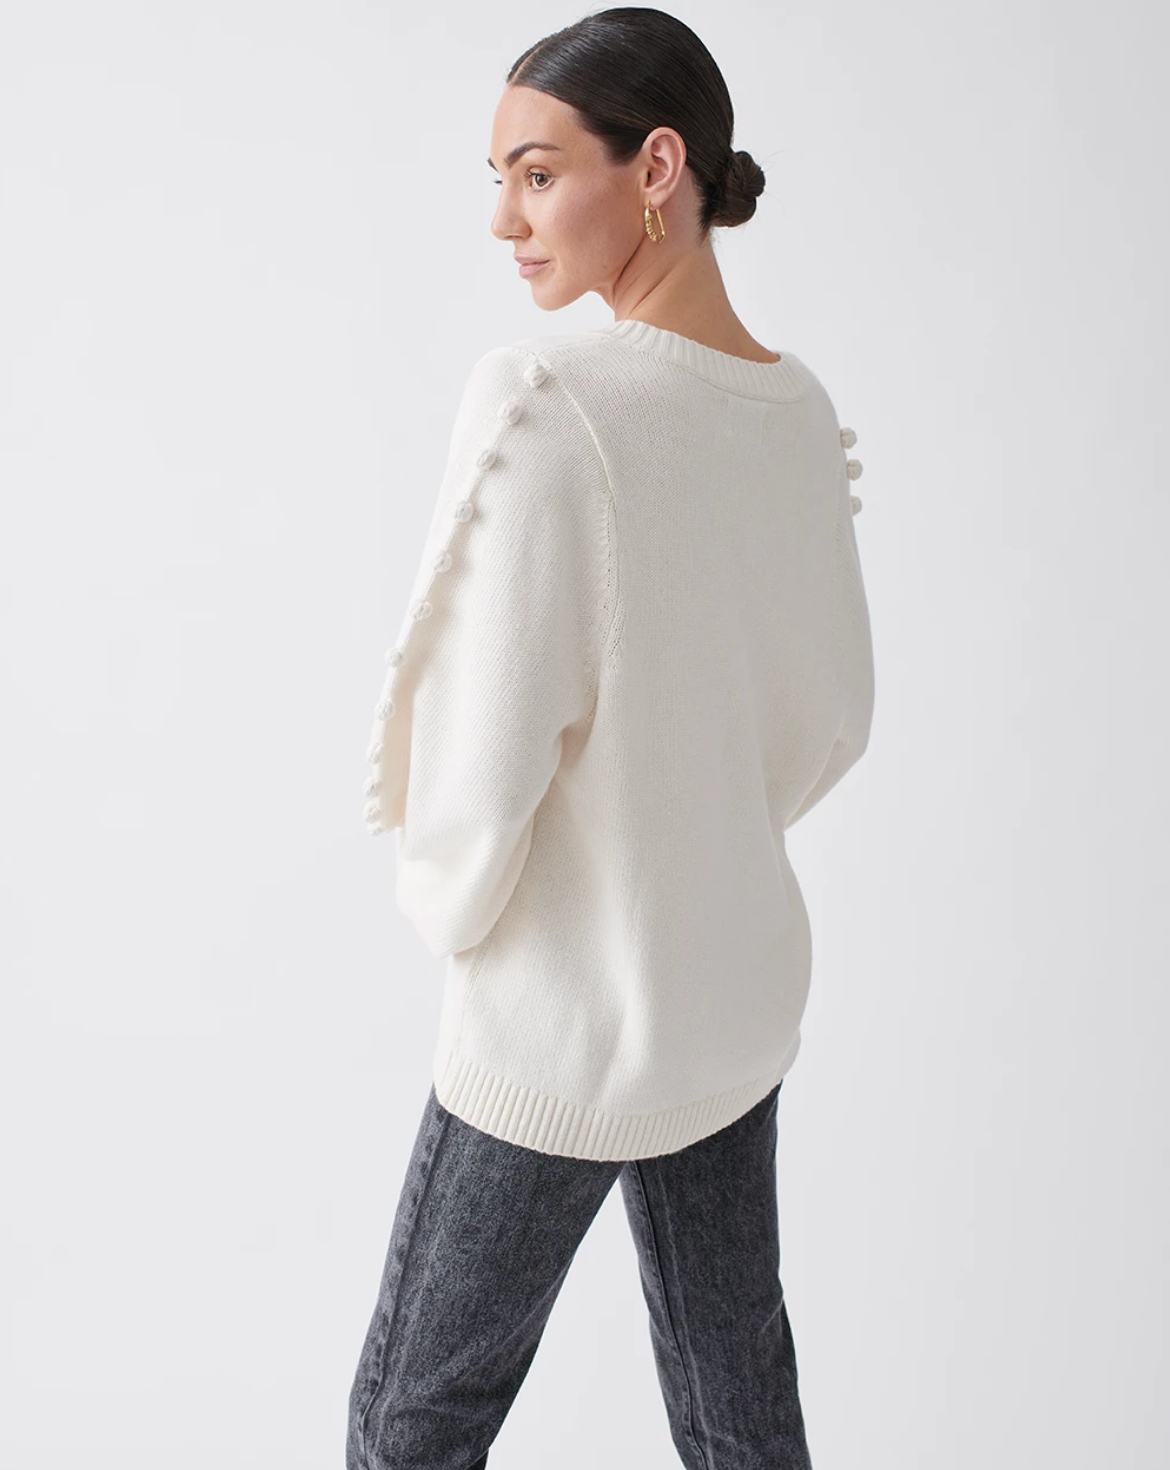 Joslin Studio Paige Wool Cotton Knit Jumper - Milk